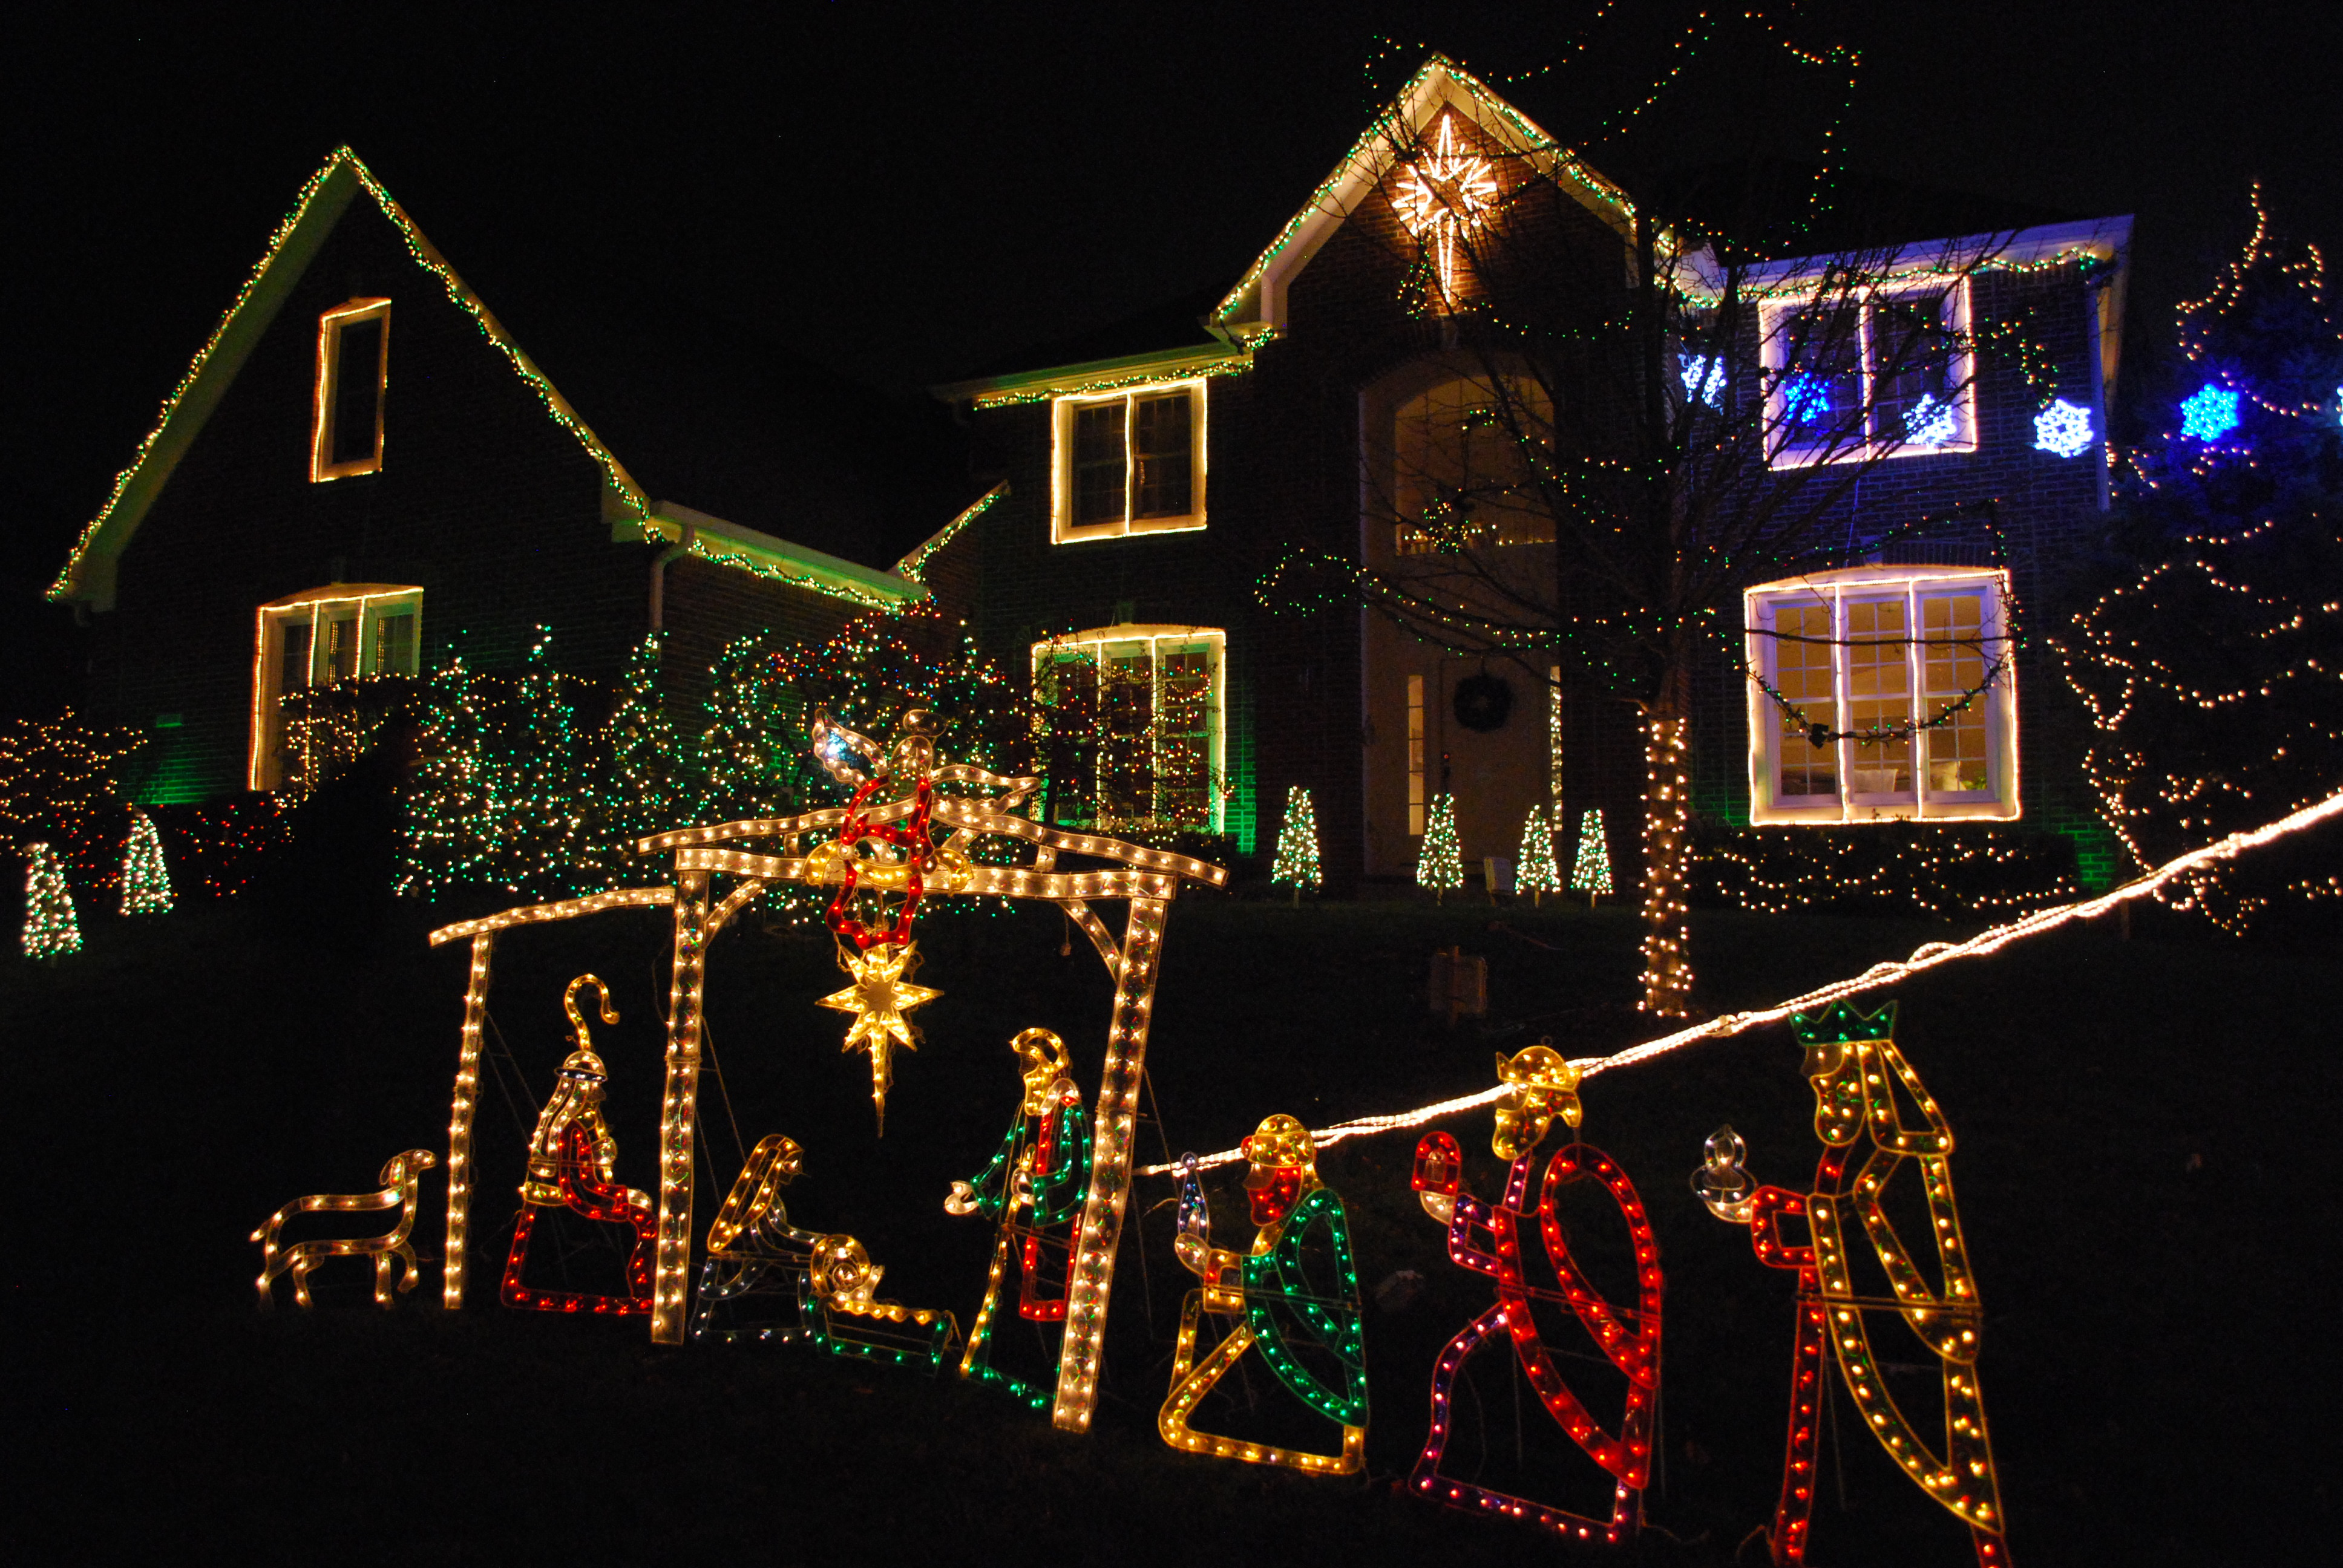 """One stop you want to include on your tour map is 14809 Victory Ct., Westfield.  """"Christmas on Victory"""" has an extensive light show set to the music of 22 songs. This year's setlist includes the additions of """"Popcorn"""" by Hot Butter and a medley of three songs: """"It's Beginning to Look a Lot Like Christmas,"""" sung by Michael Buble, """"All of the Lights"""" sung by Kanye West and Rihanna, and """"All I want for Christmas is You"""" sung by Mariah Carey. The home is owned by Tom and Barb Lorek. The light display is available 6:30 to 9:30 p.m. Sunday through Thursday and 6:30 to 10 p.m. Friday and Saturday. The show runs through Dec. 29. It is free, but donations will be accepted for Make a Wish. For more information, visit www.facebook.com/ChristmasOnVictory."""